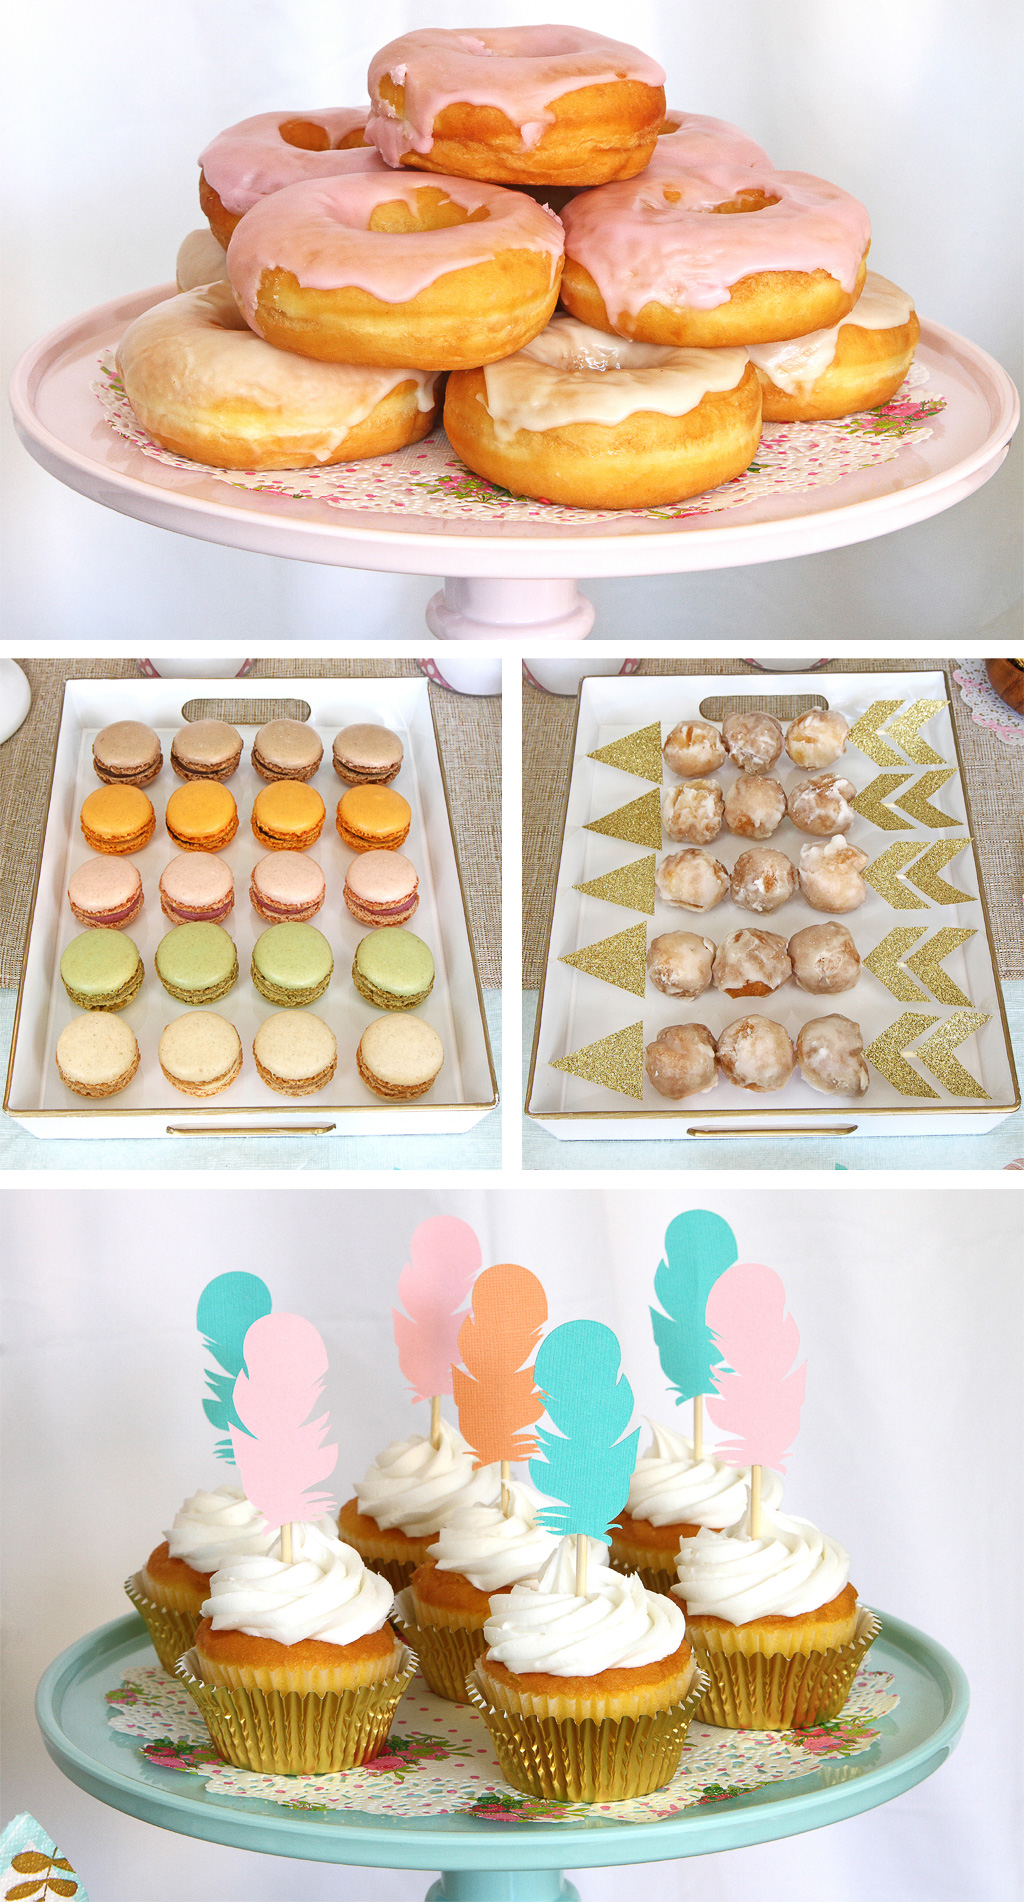 Cozy Boho Birthday Party Food Ideas